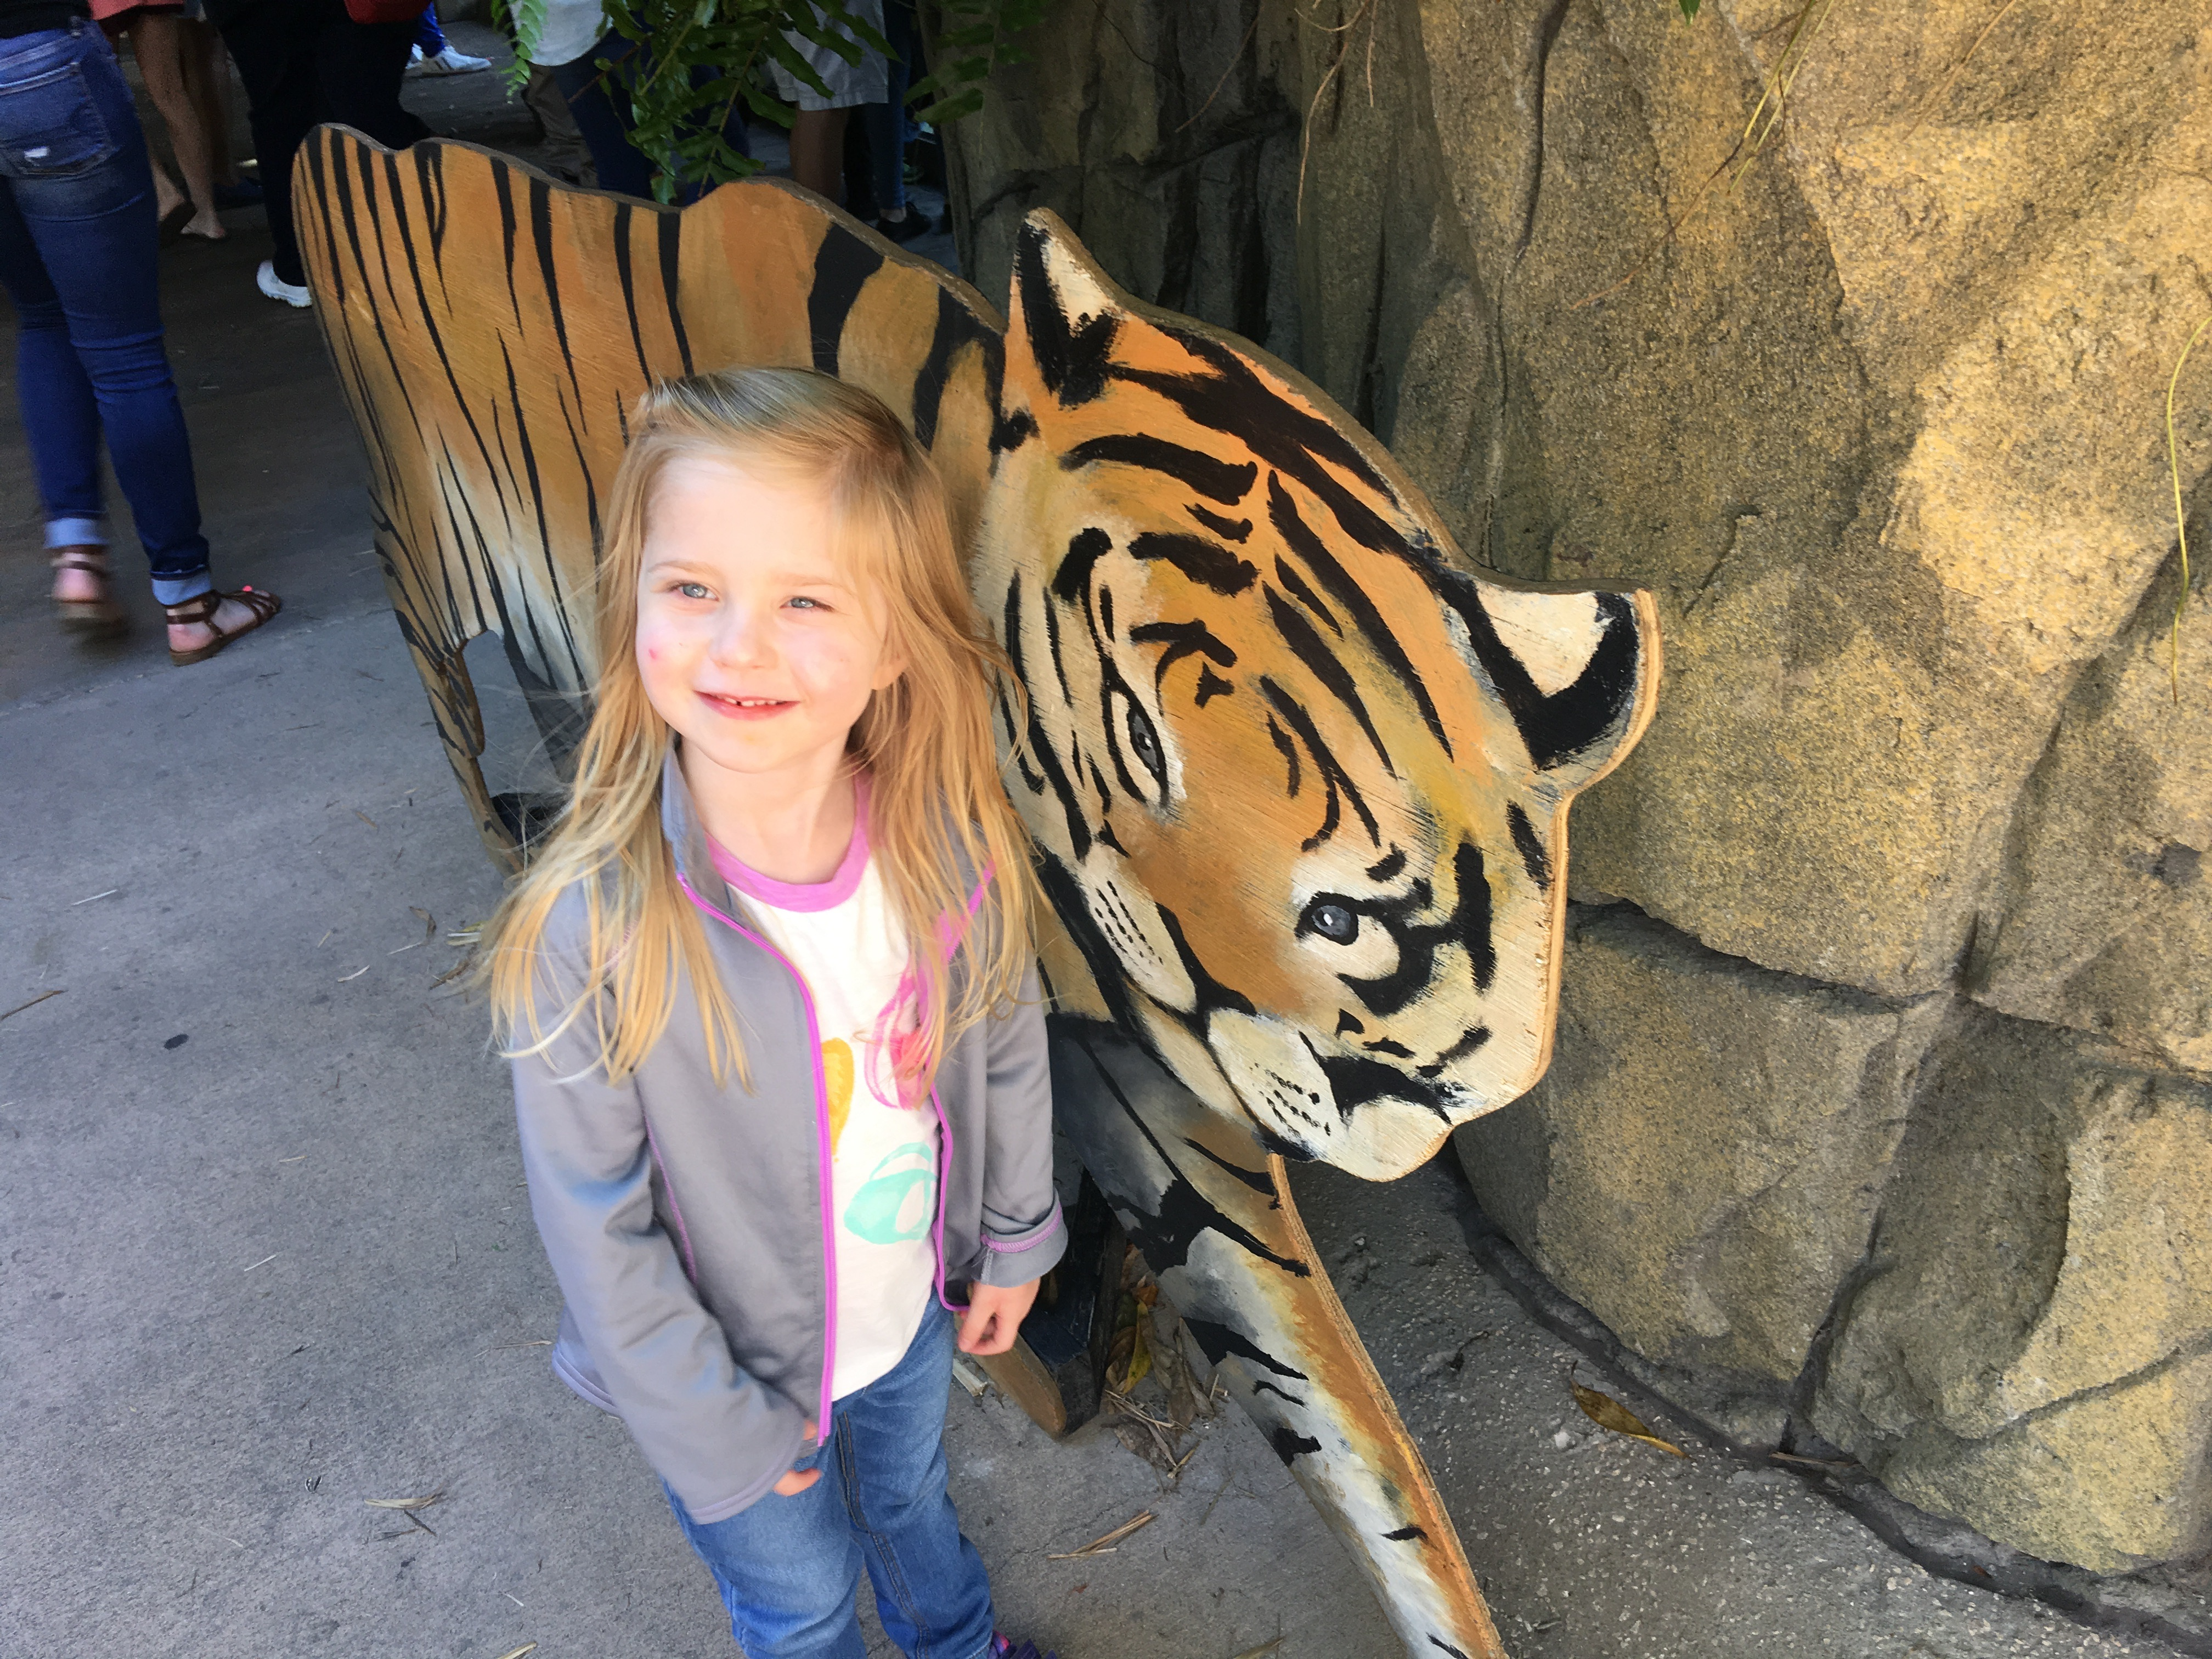 A young girl stands next to a painted wooden tiger.